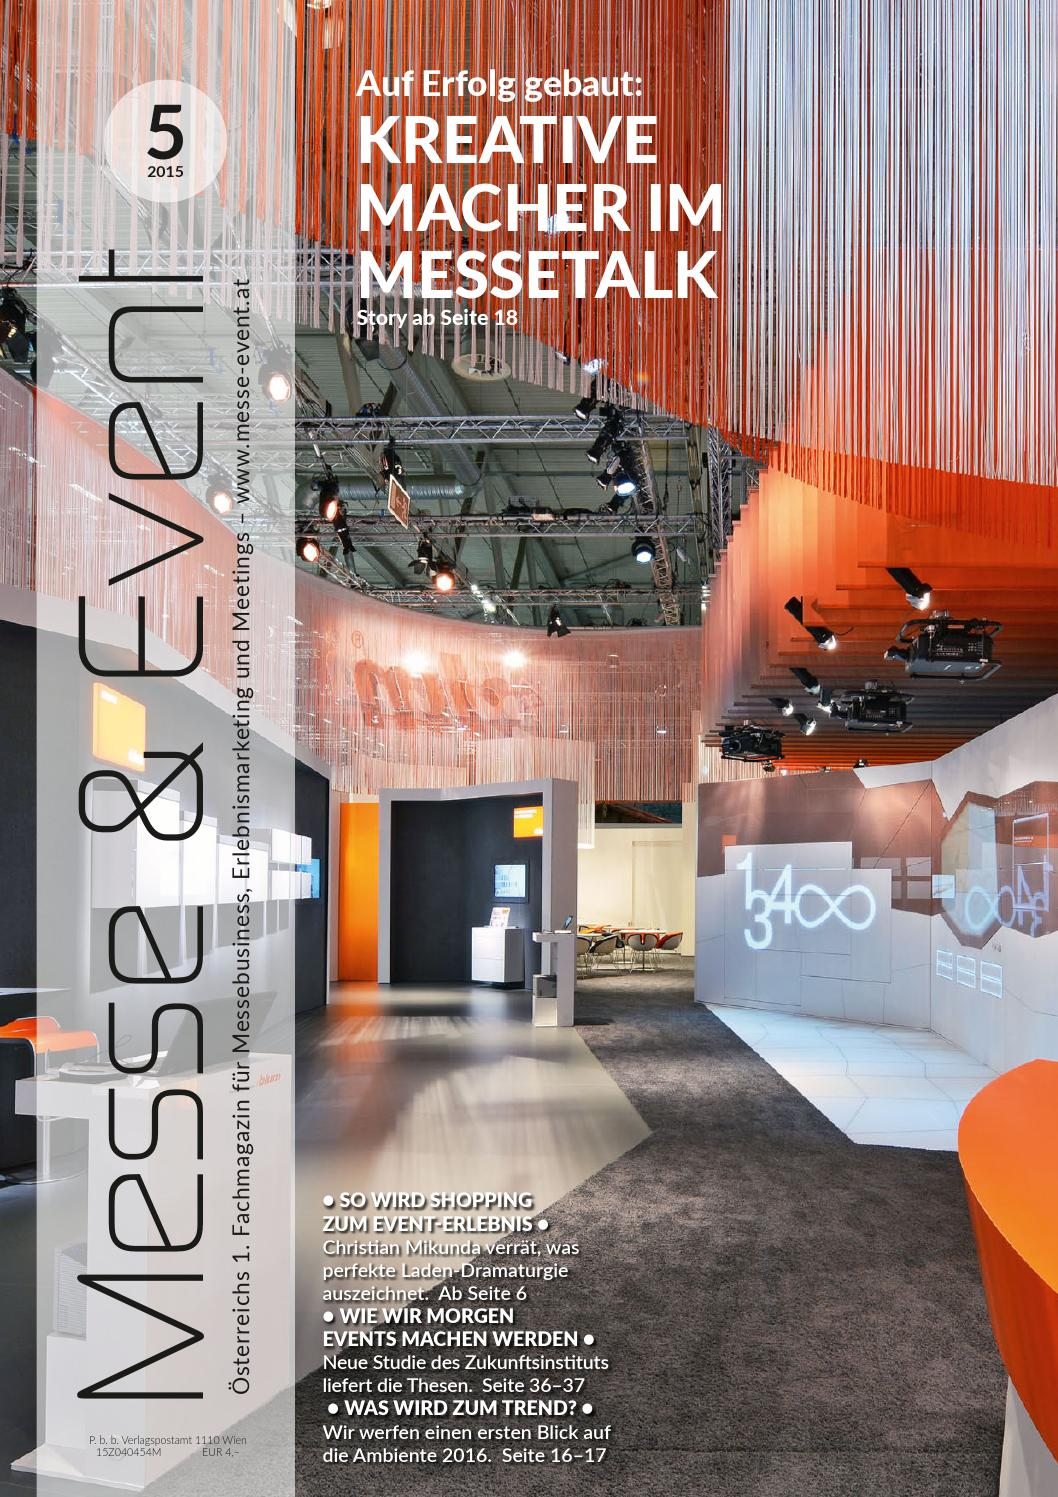 Messe & Event 5/2015 by Messe & Event Magazin - issuu